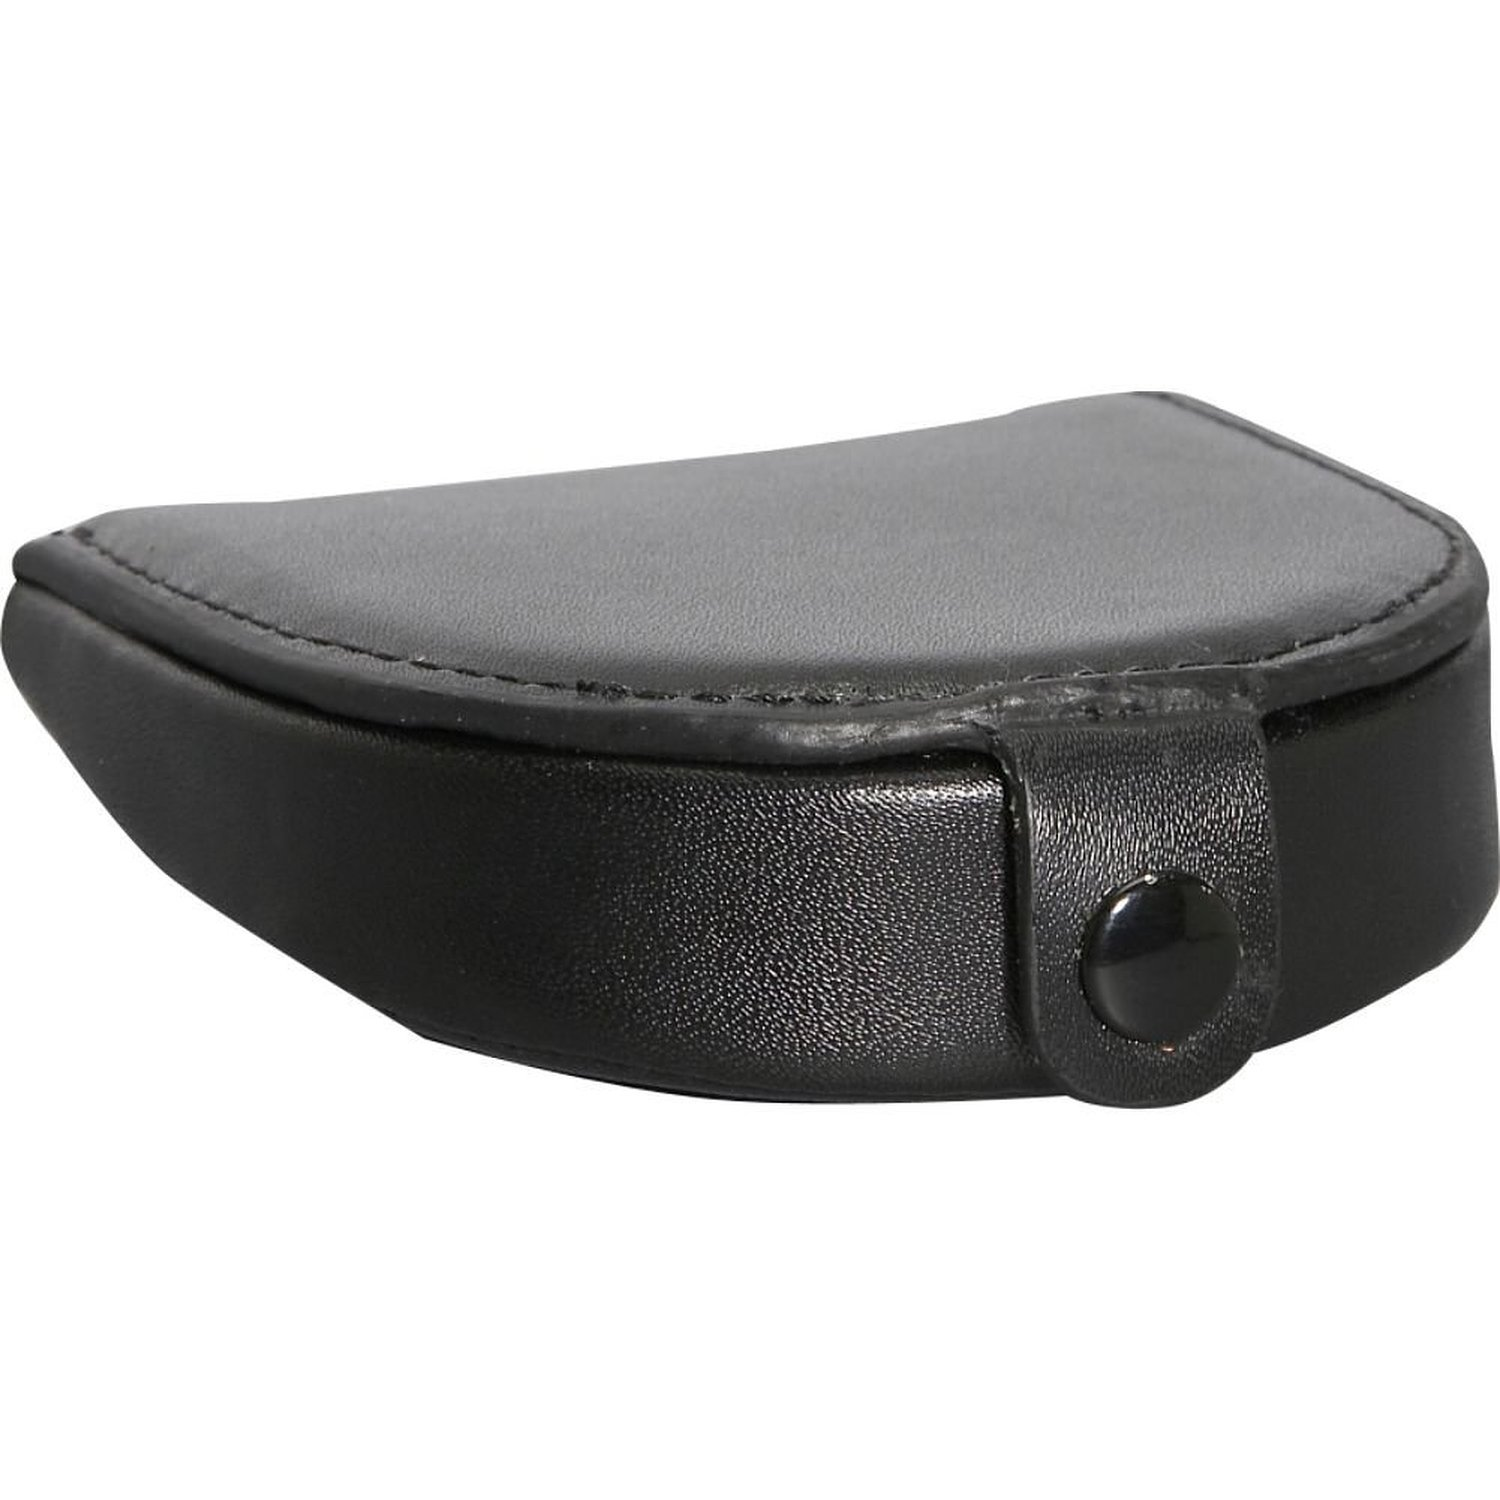 Royce Leather Coin Holder - Black